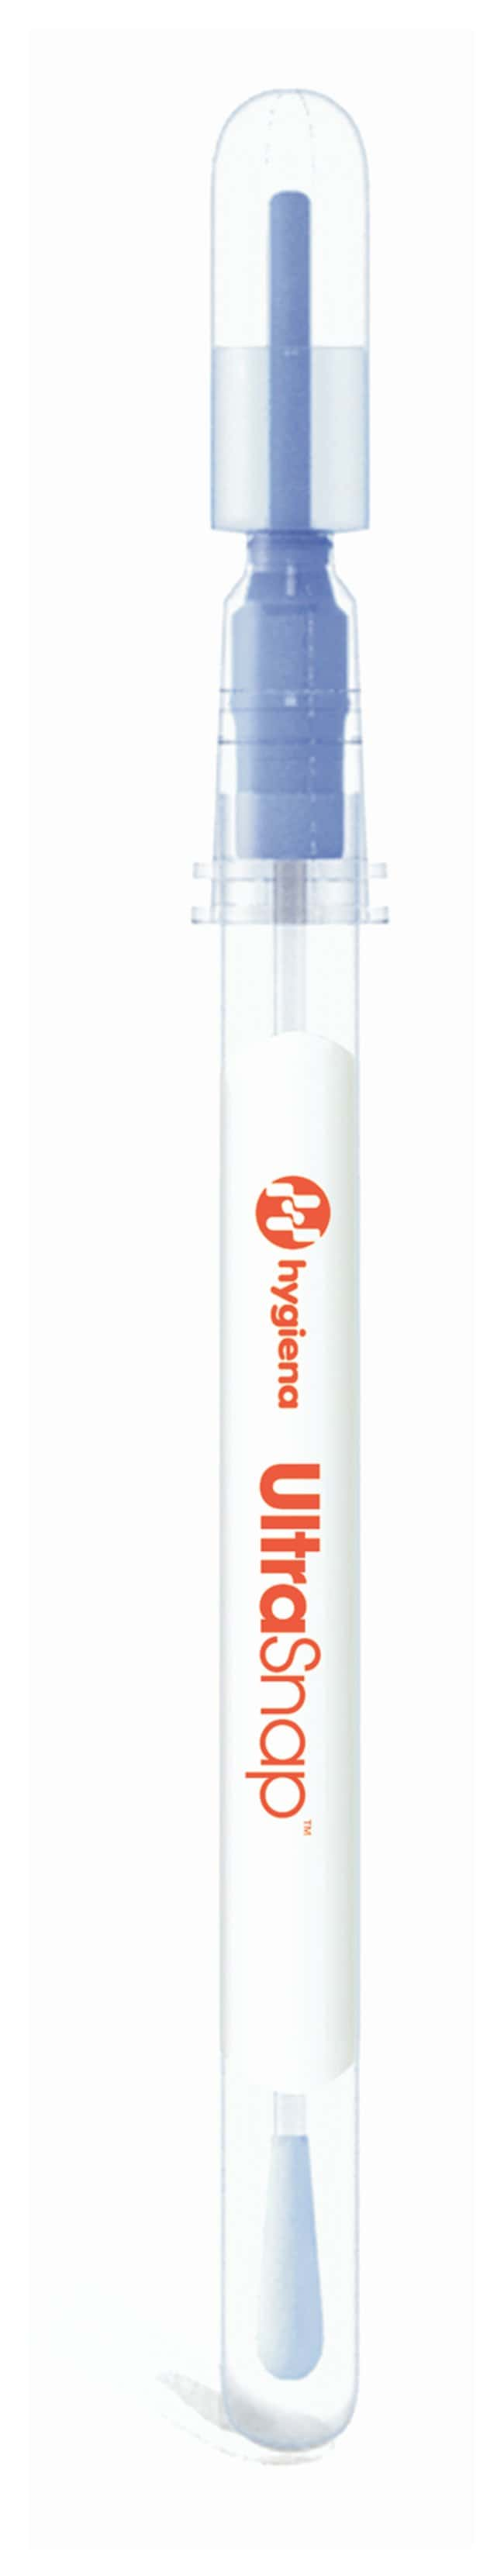 HygienaUltrasnap™ Surface ATP Swabs